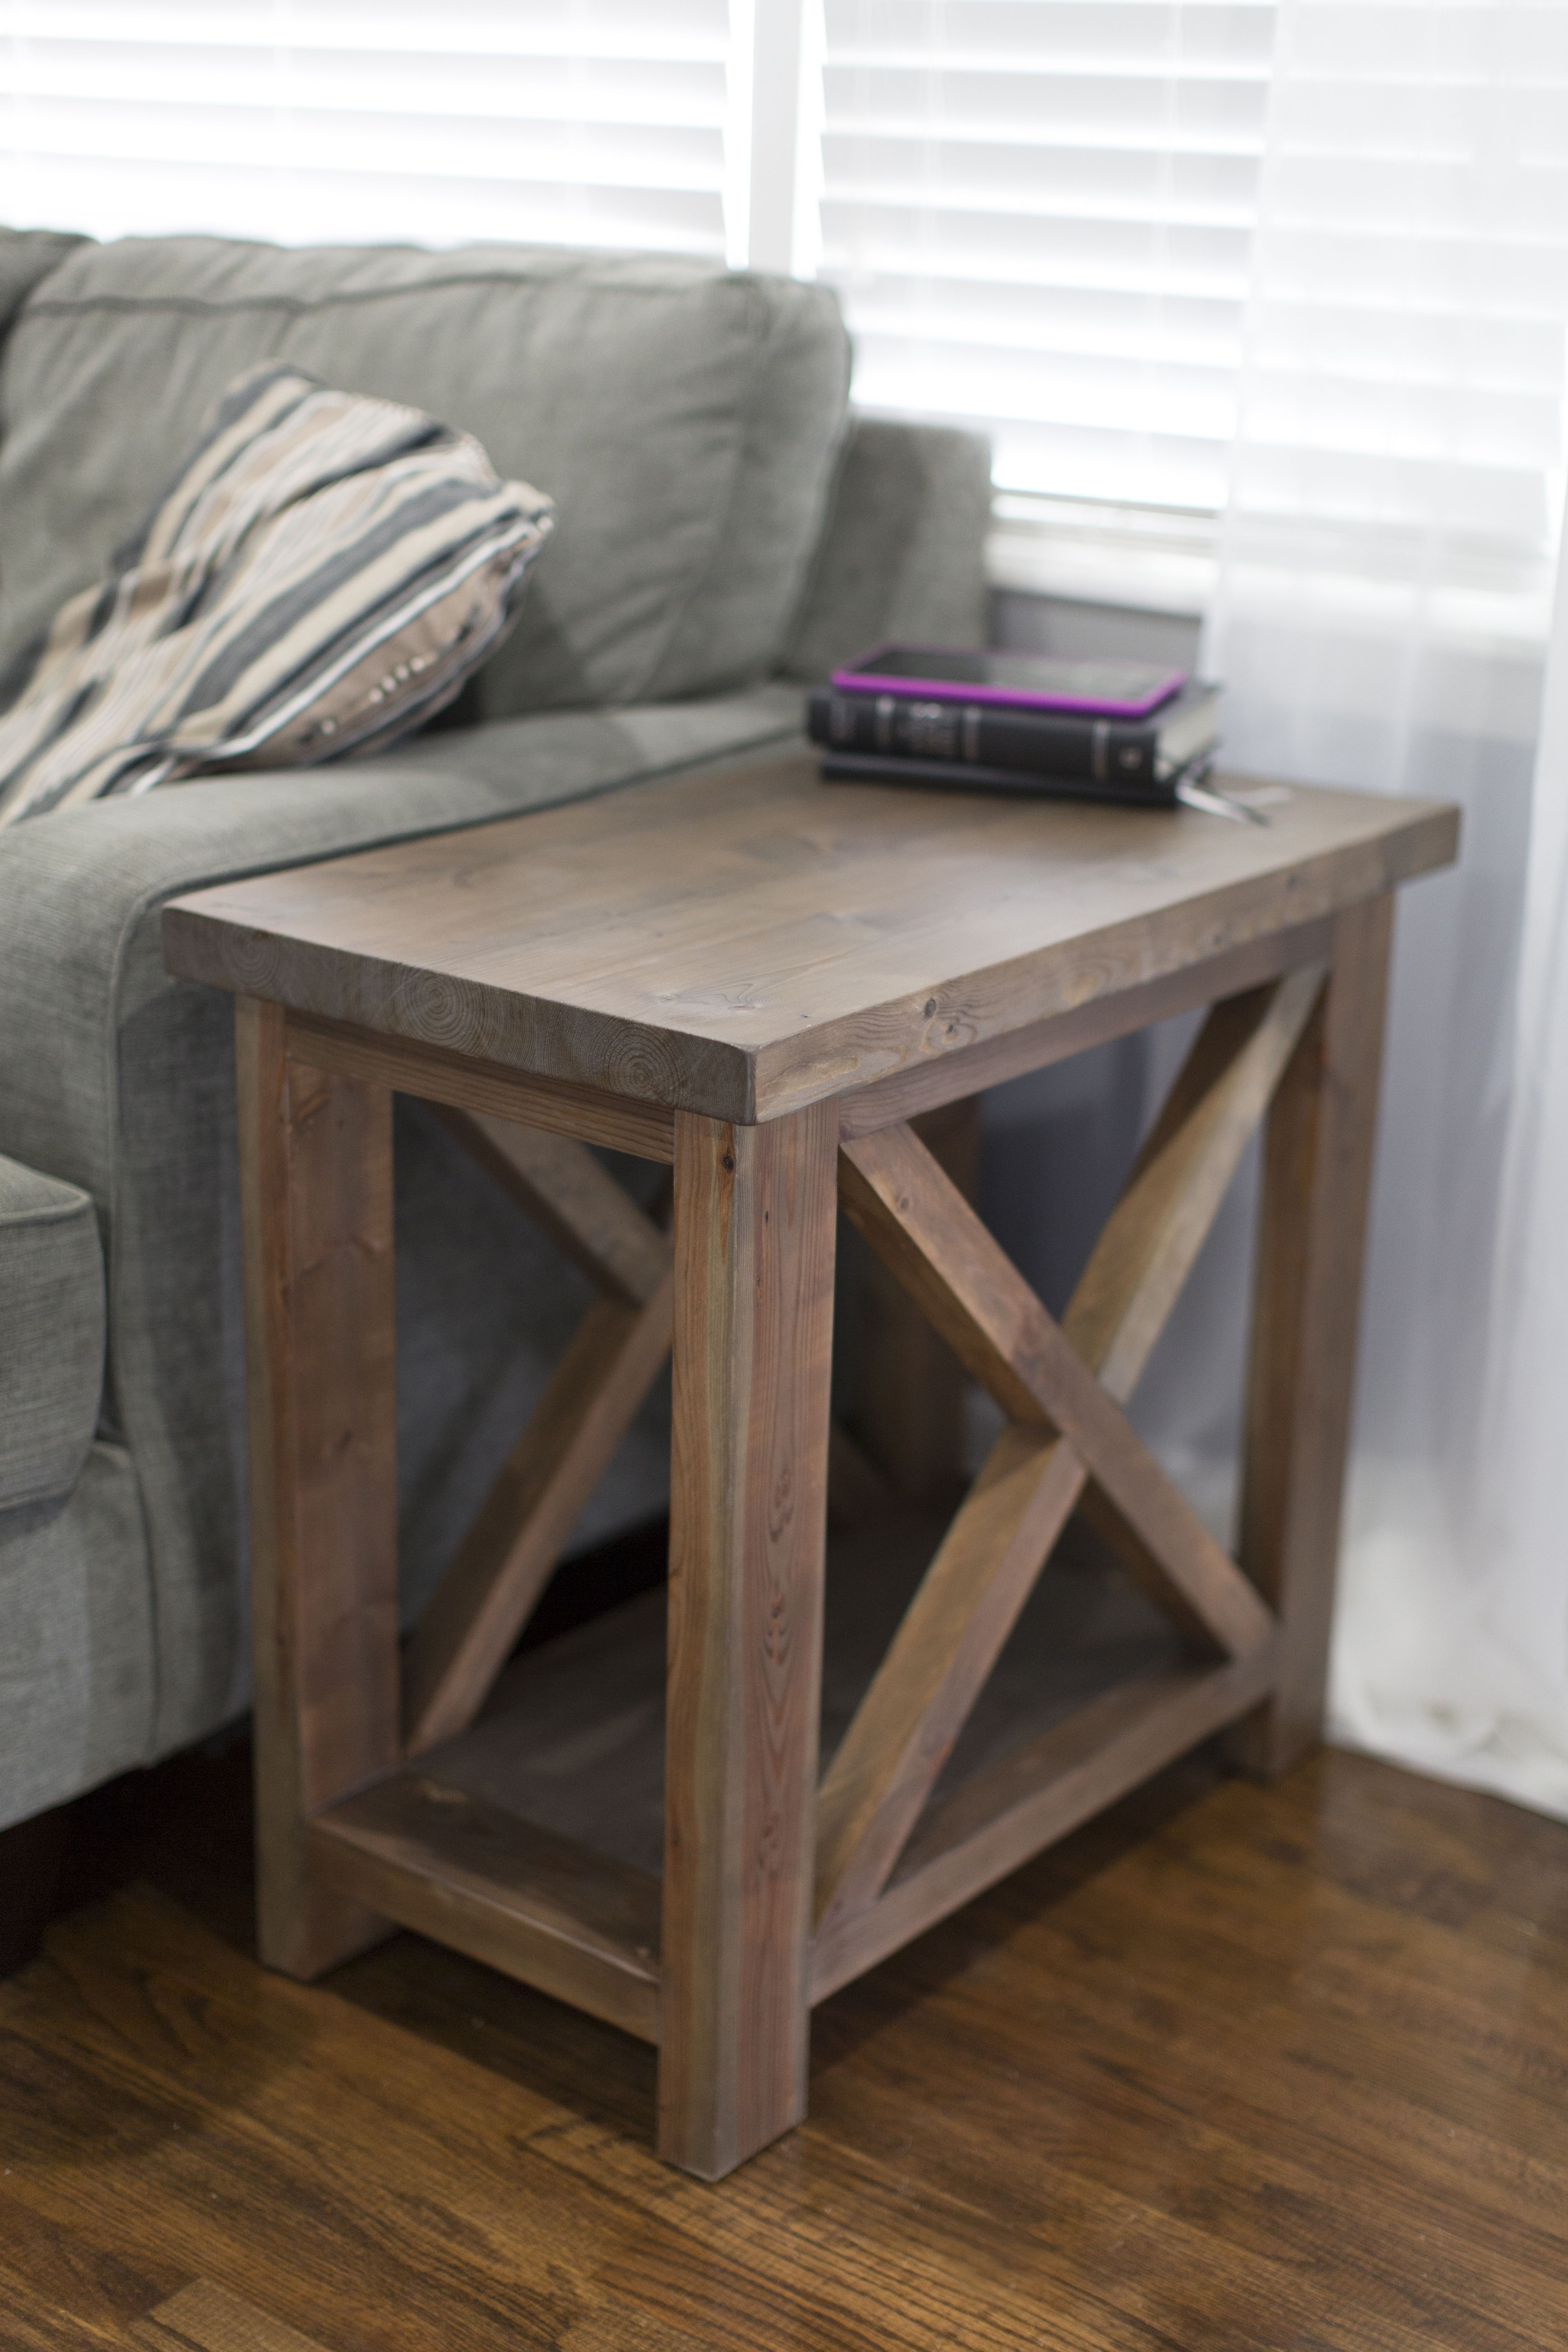 - Diy Rustic Wood Coffee Table In 2020 (With Images) Rustic End